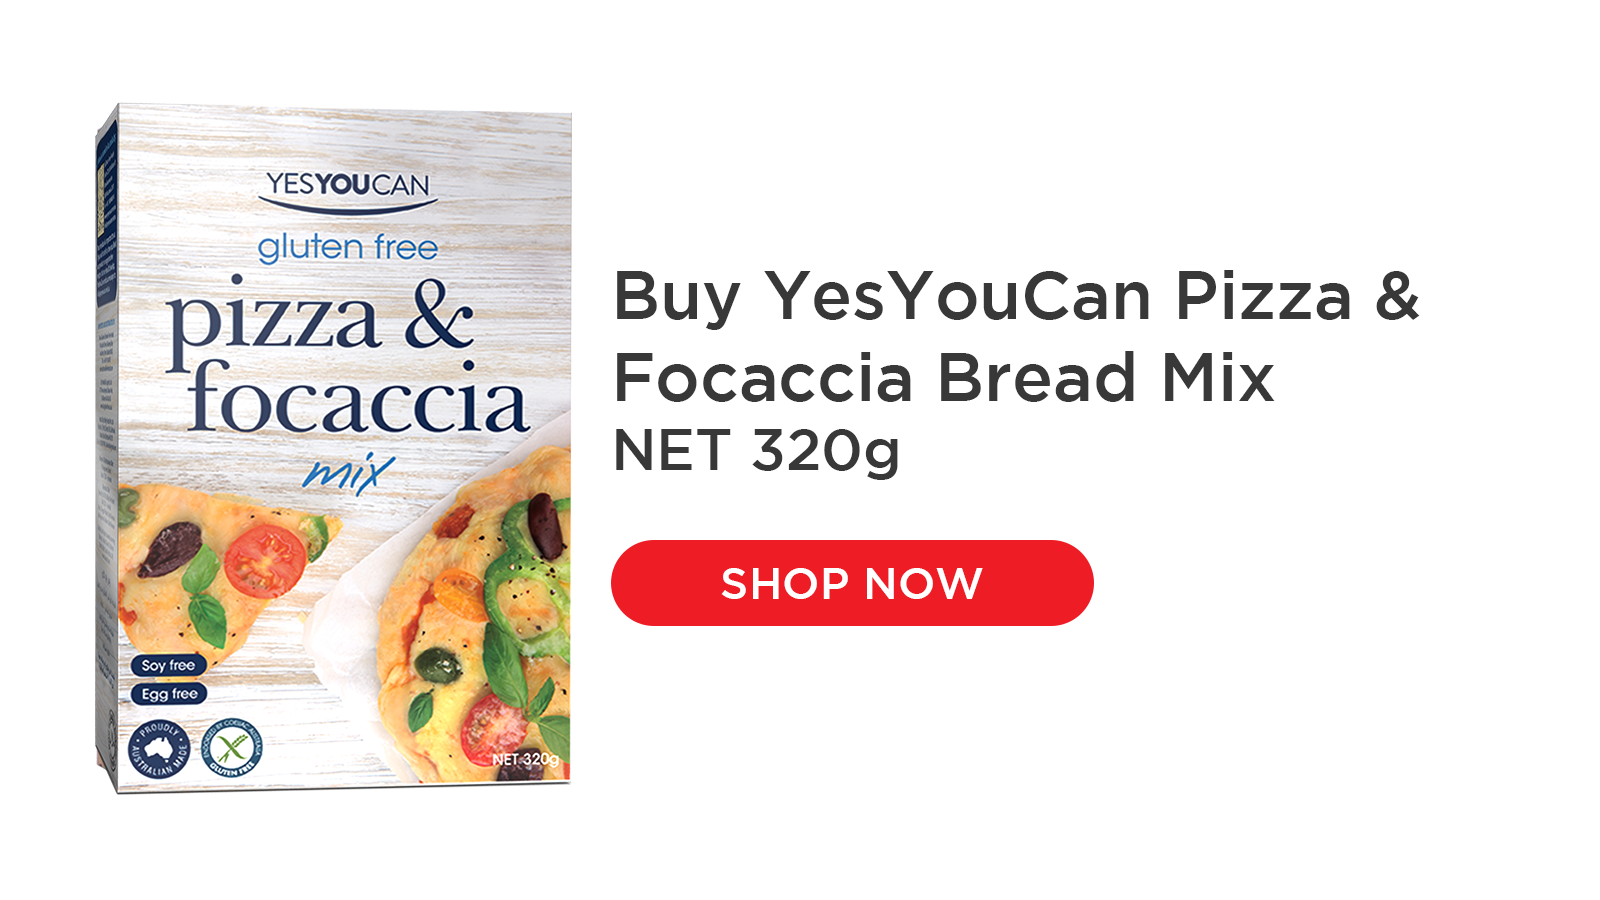 Use YesYouCan Pizza Mix to make fantastic tasting pizza bases to your preference, either thin and crispy or a thicker base. This carefully crafted mix delivers authentic taste and texture for delicious pizzas, just add your favourite toppings. Versatile mix for focaccia or other flat breads.